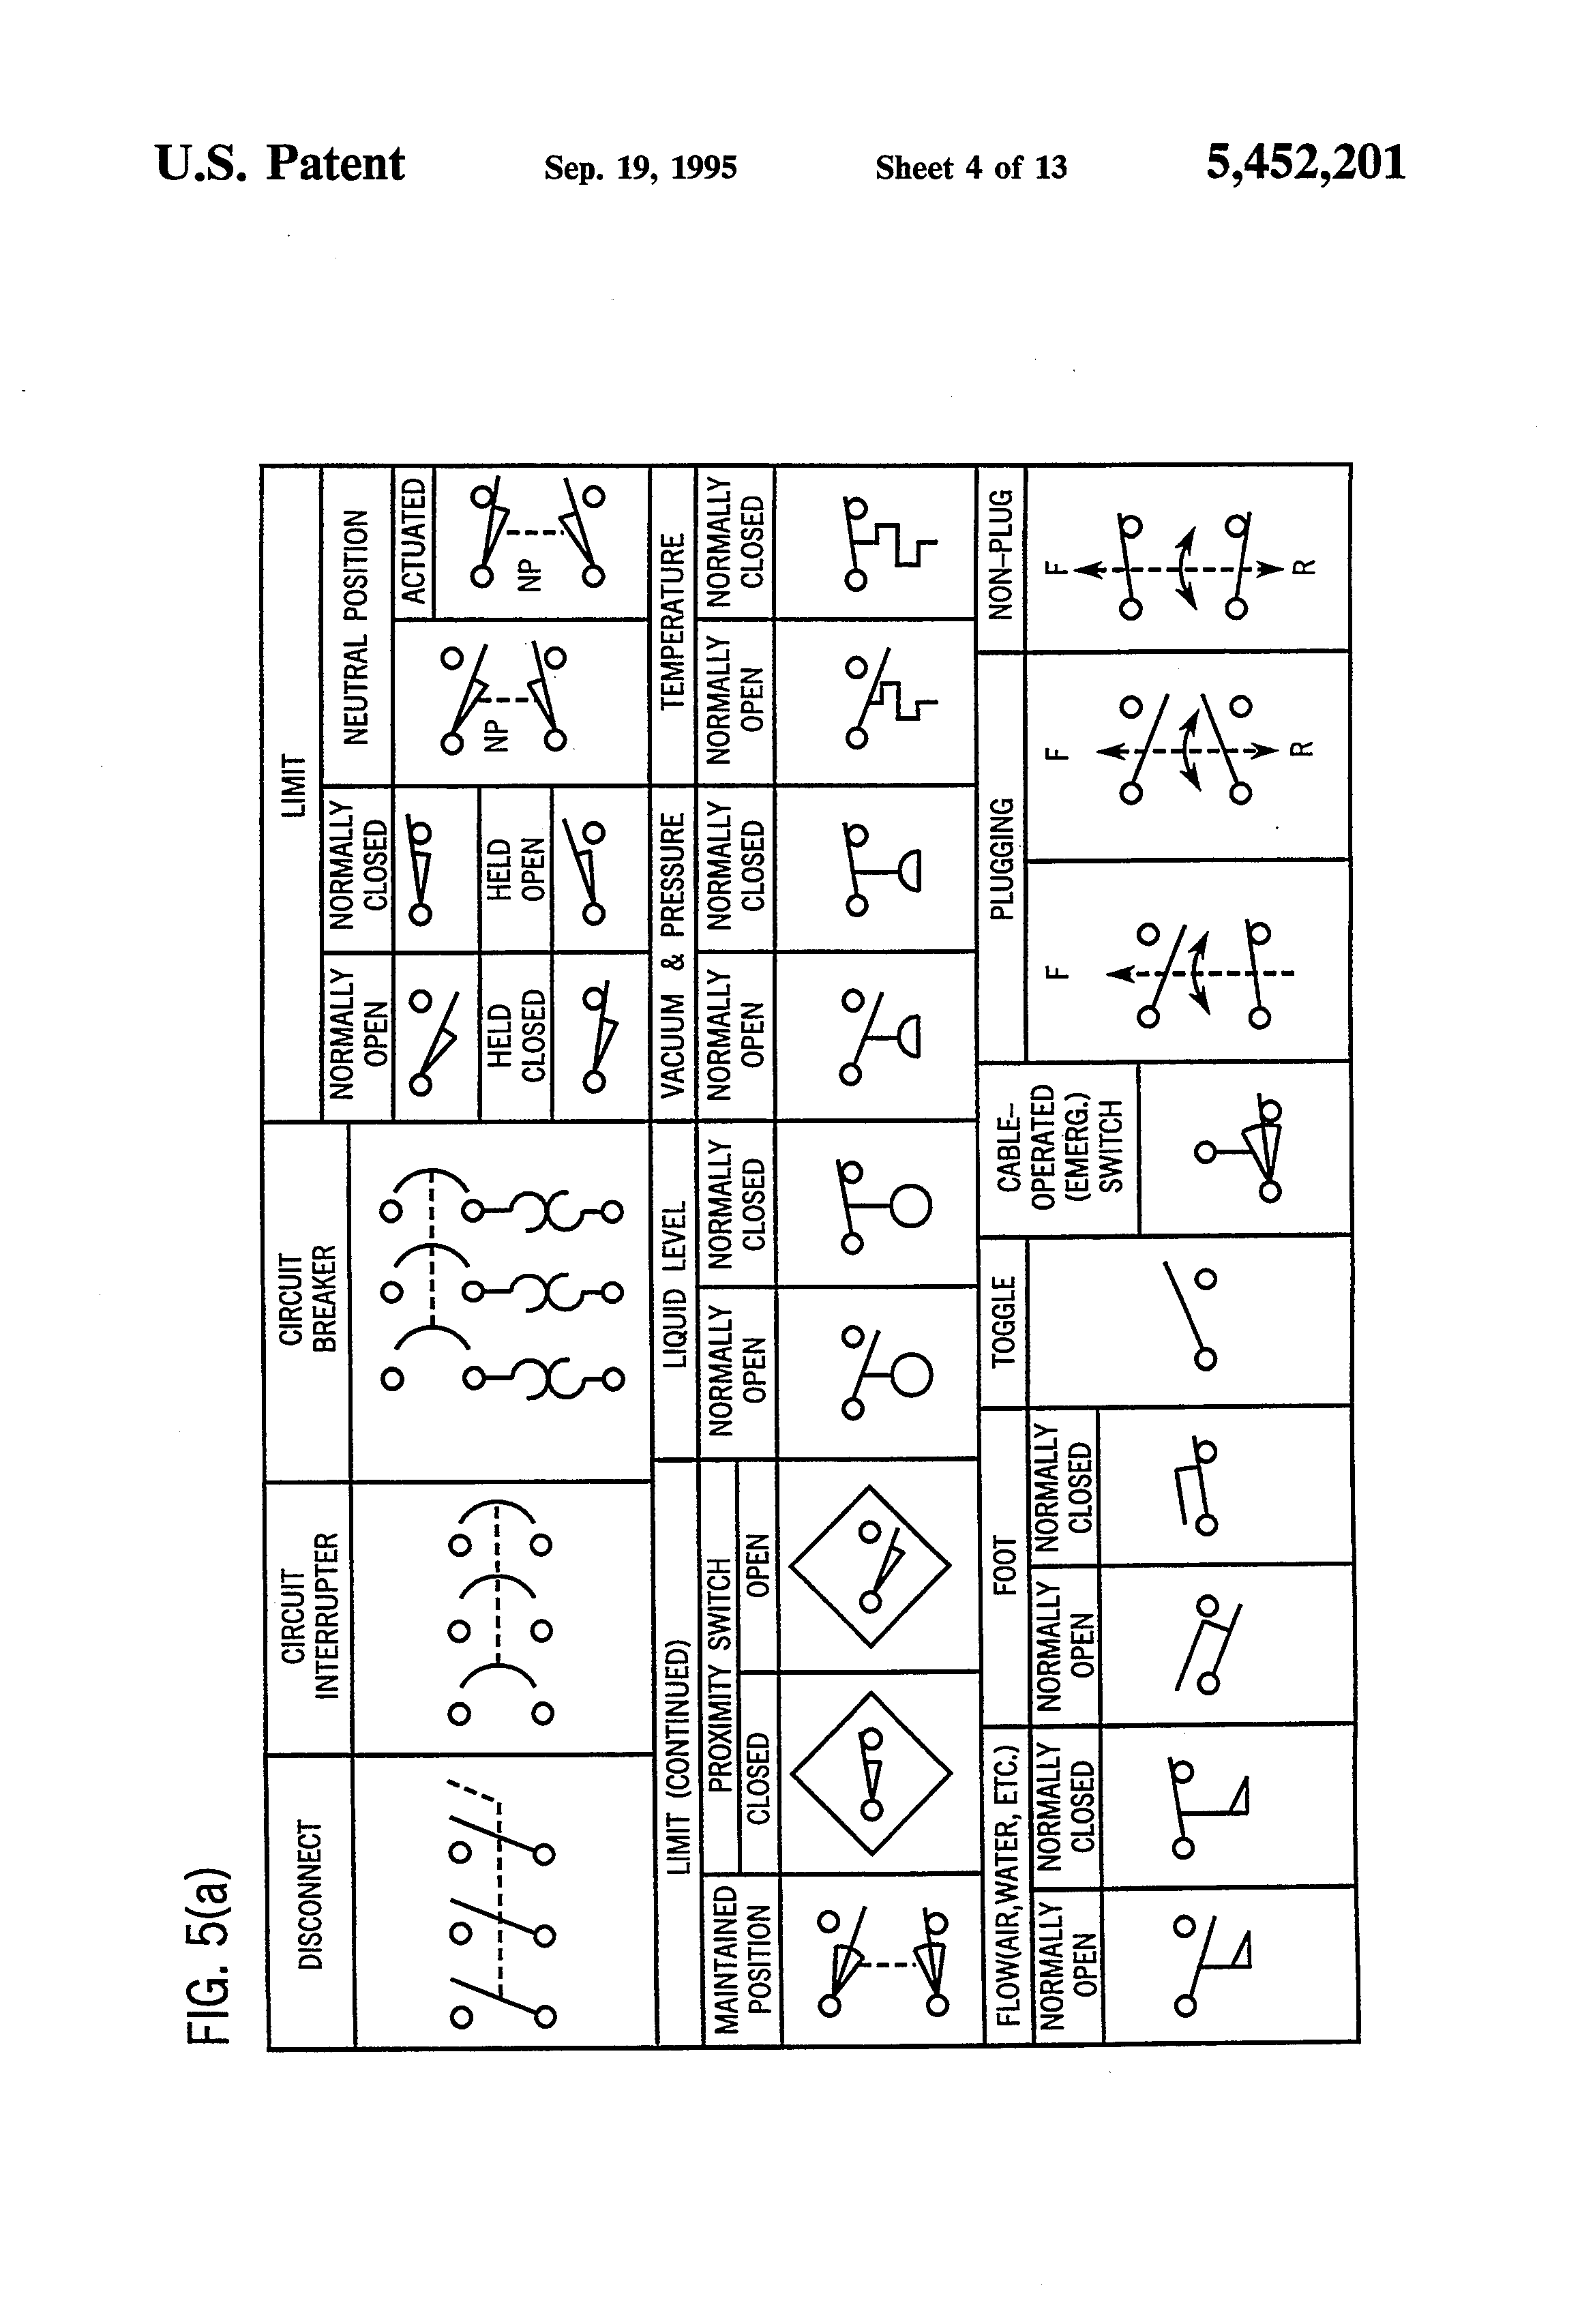 Unique Wiring Diagram Symbols Meanings Diagrams